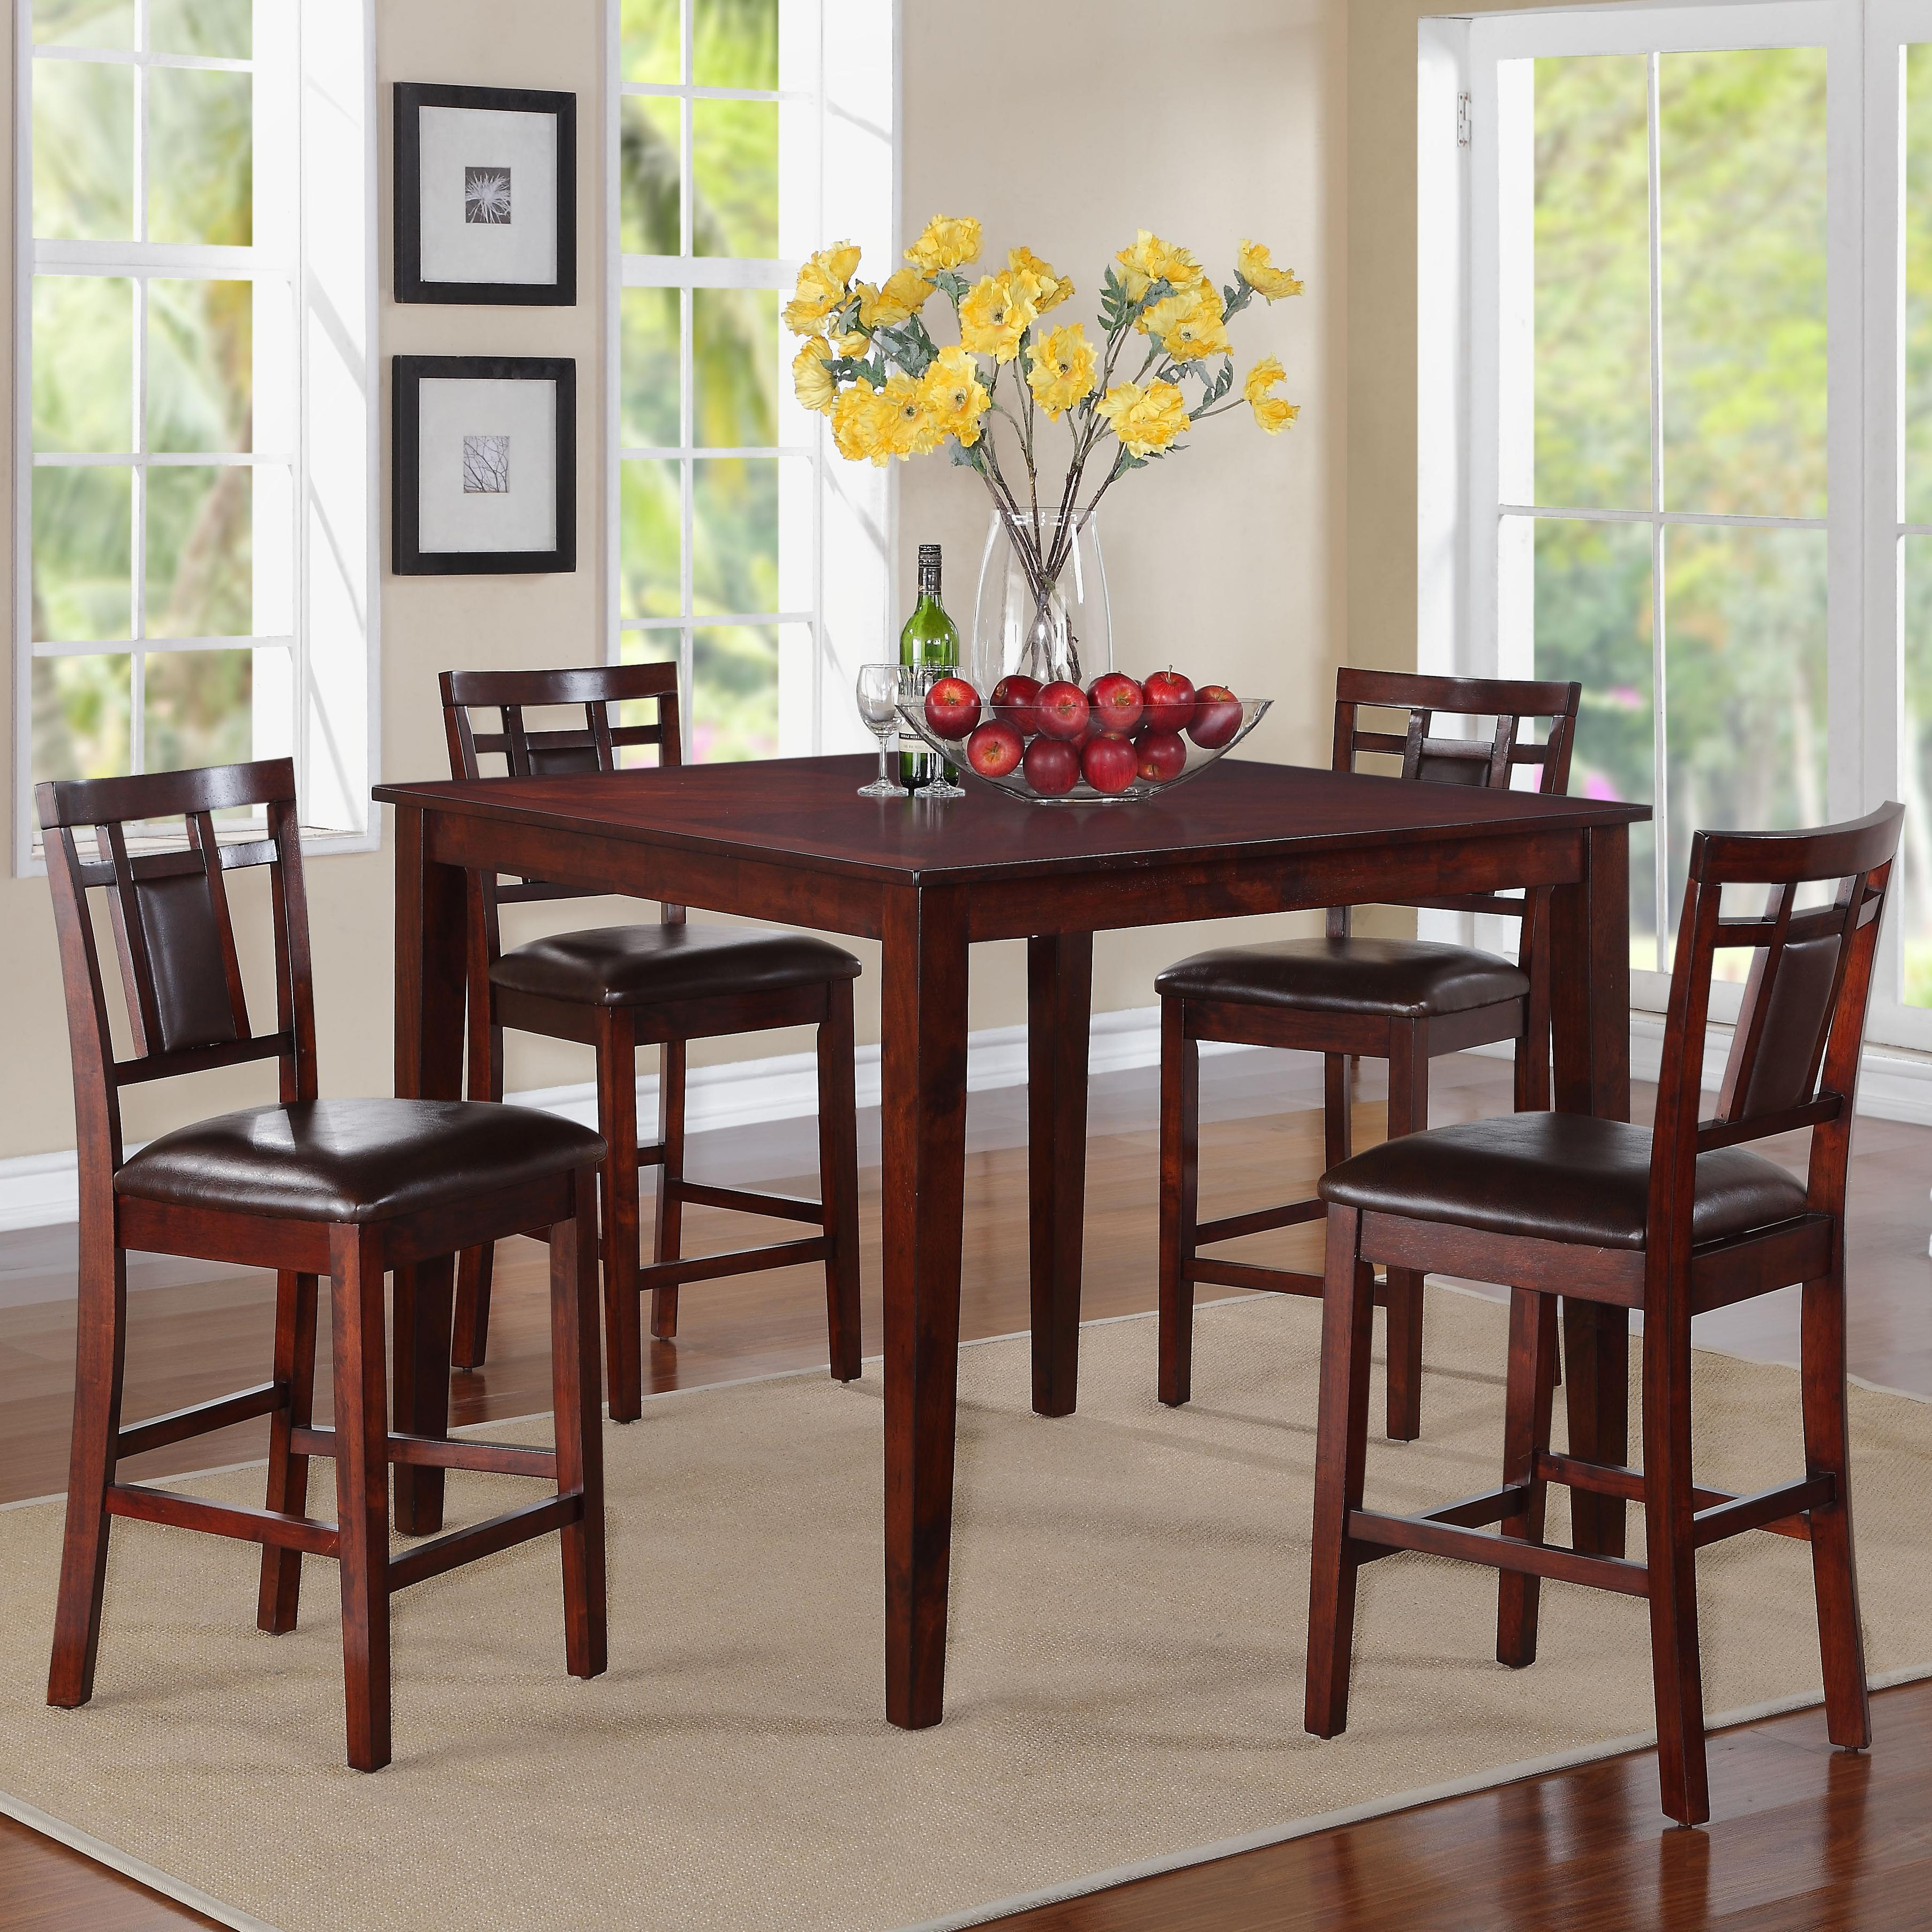 Standard furniture westlake 17292 5 piece counter height table with stools set great american Grand home furniture outlet westlake